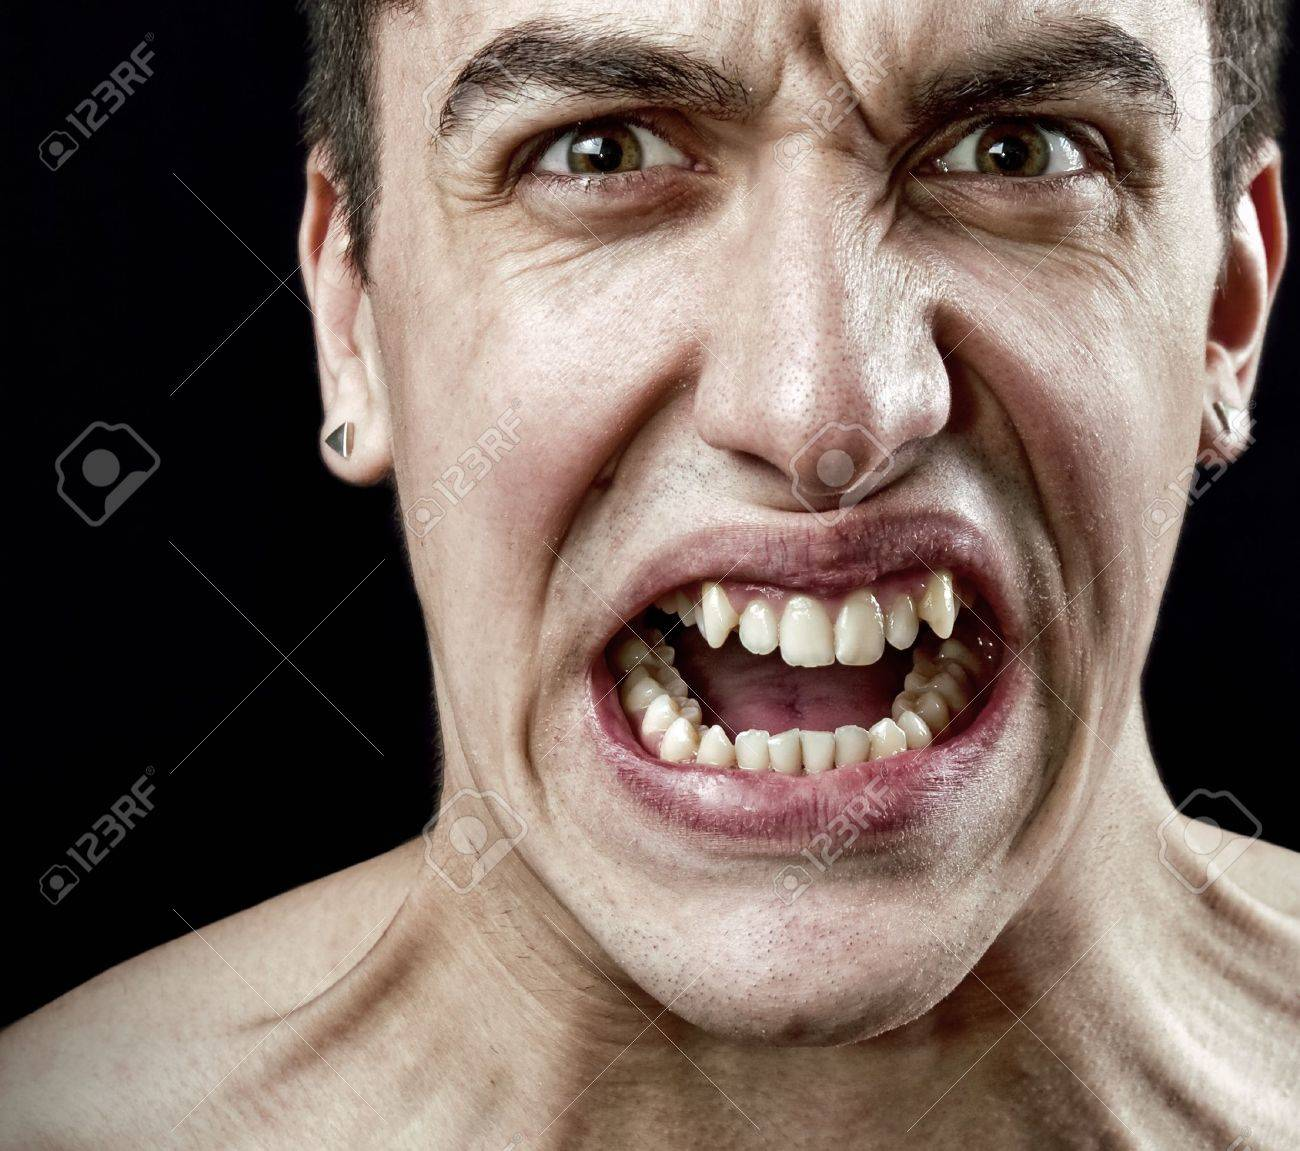 Grimace face clip art stock photo woman pulls a face in upset - To Grimace Stress Concept Grimace Of Angry Furious Stressed Man